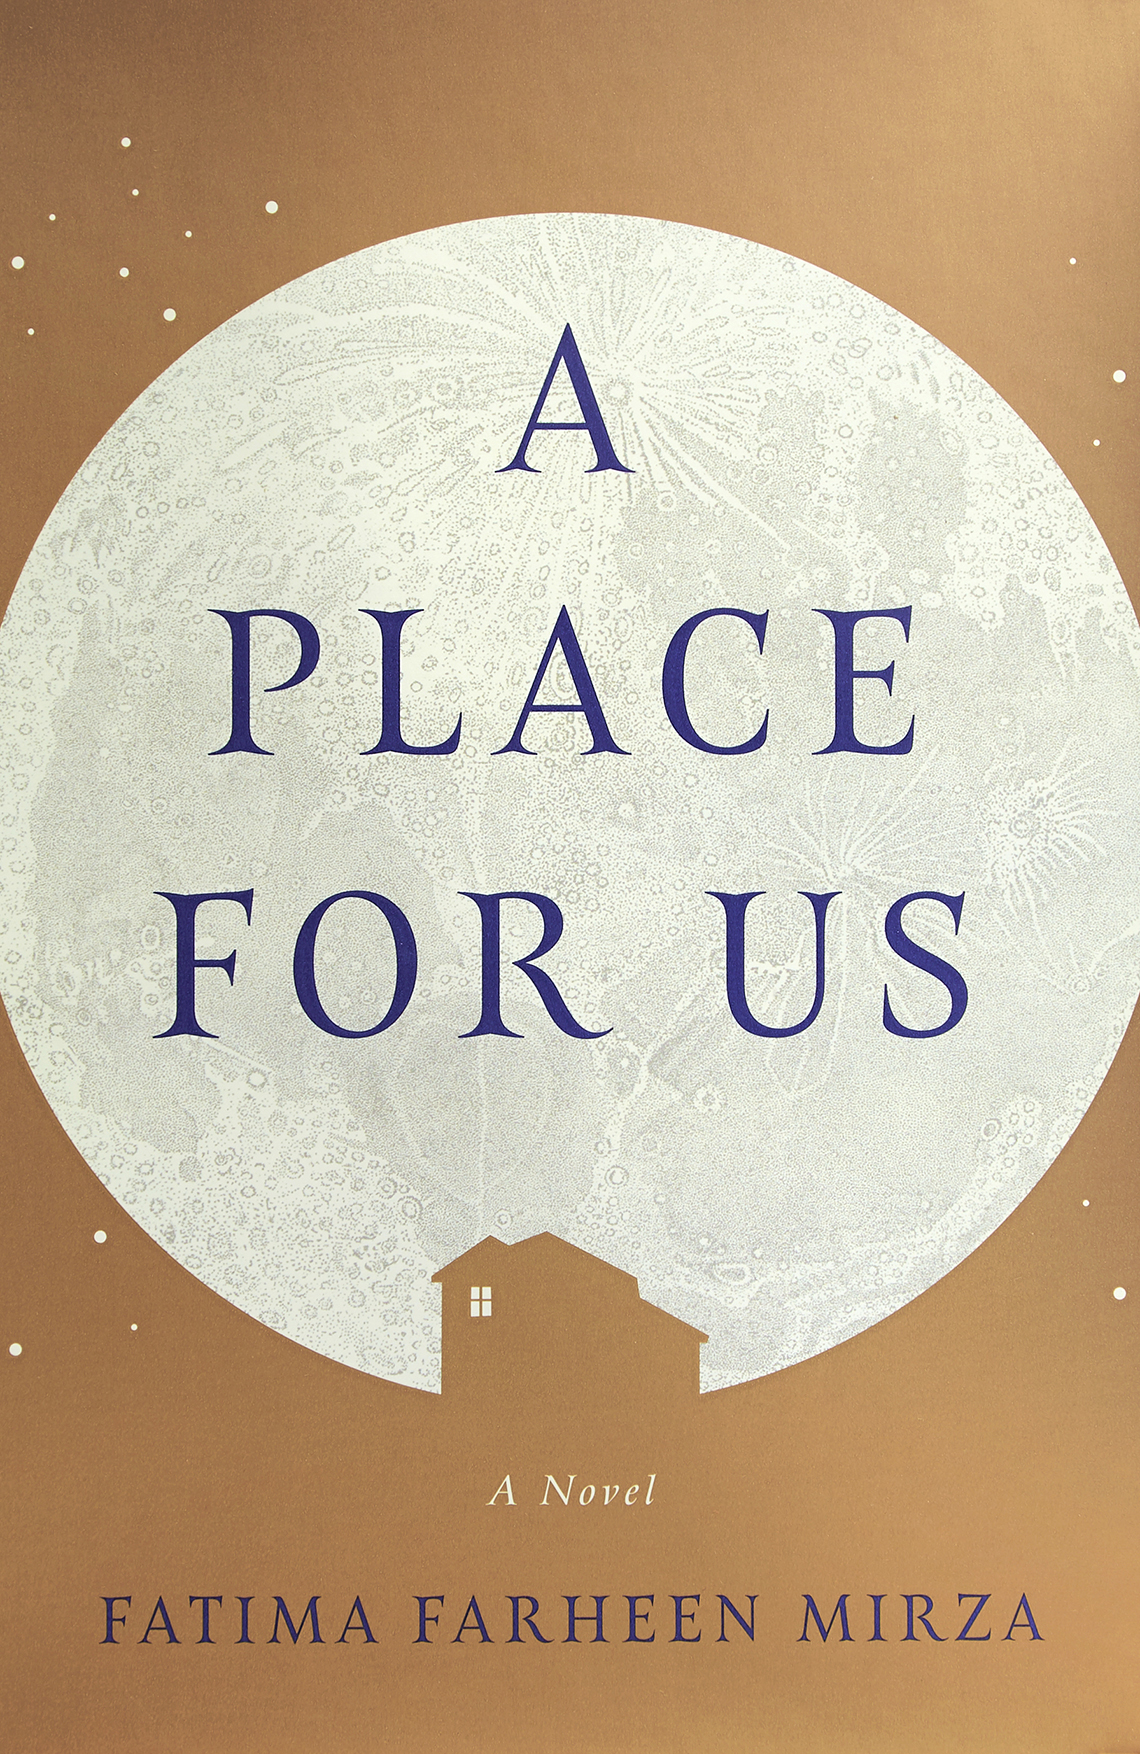 book cover, text reads: A Place For Us, A Novel, Fatima Farheen Mirza